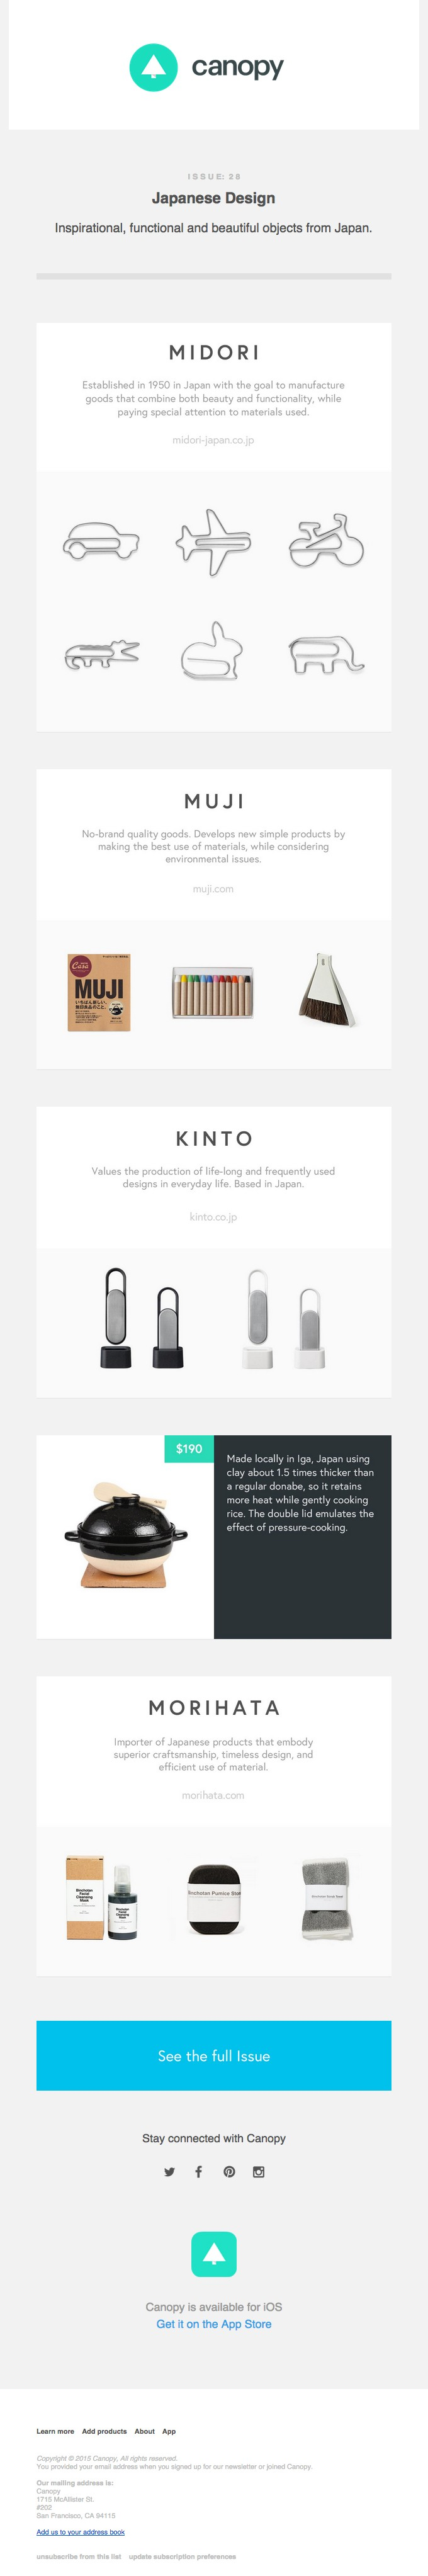 Canopy Email footer | design: email + digital marketing | Pinterest